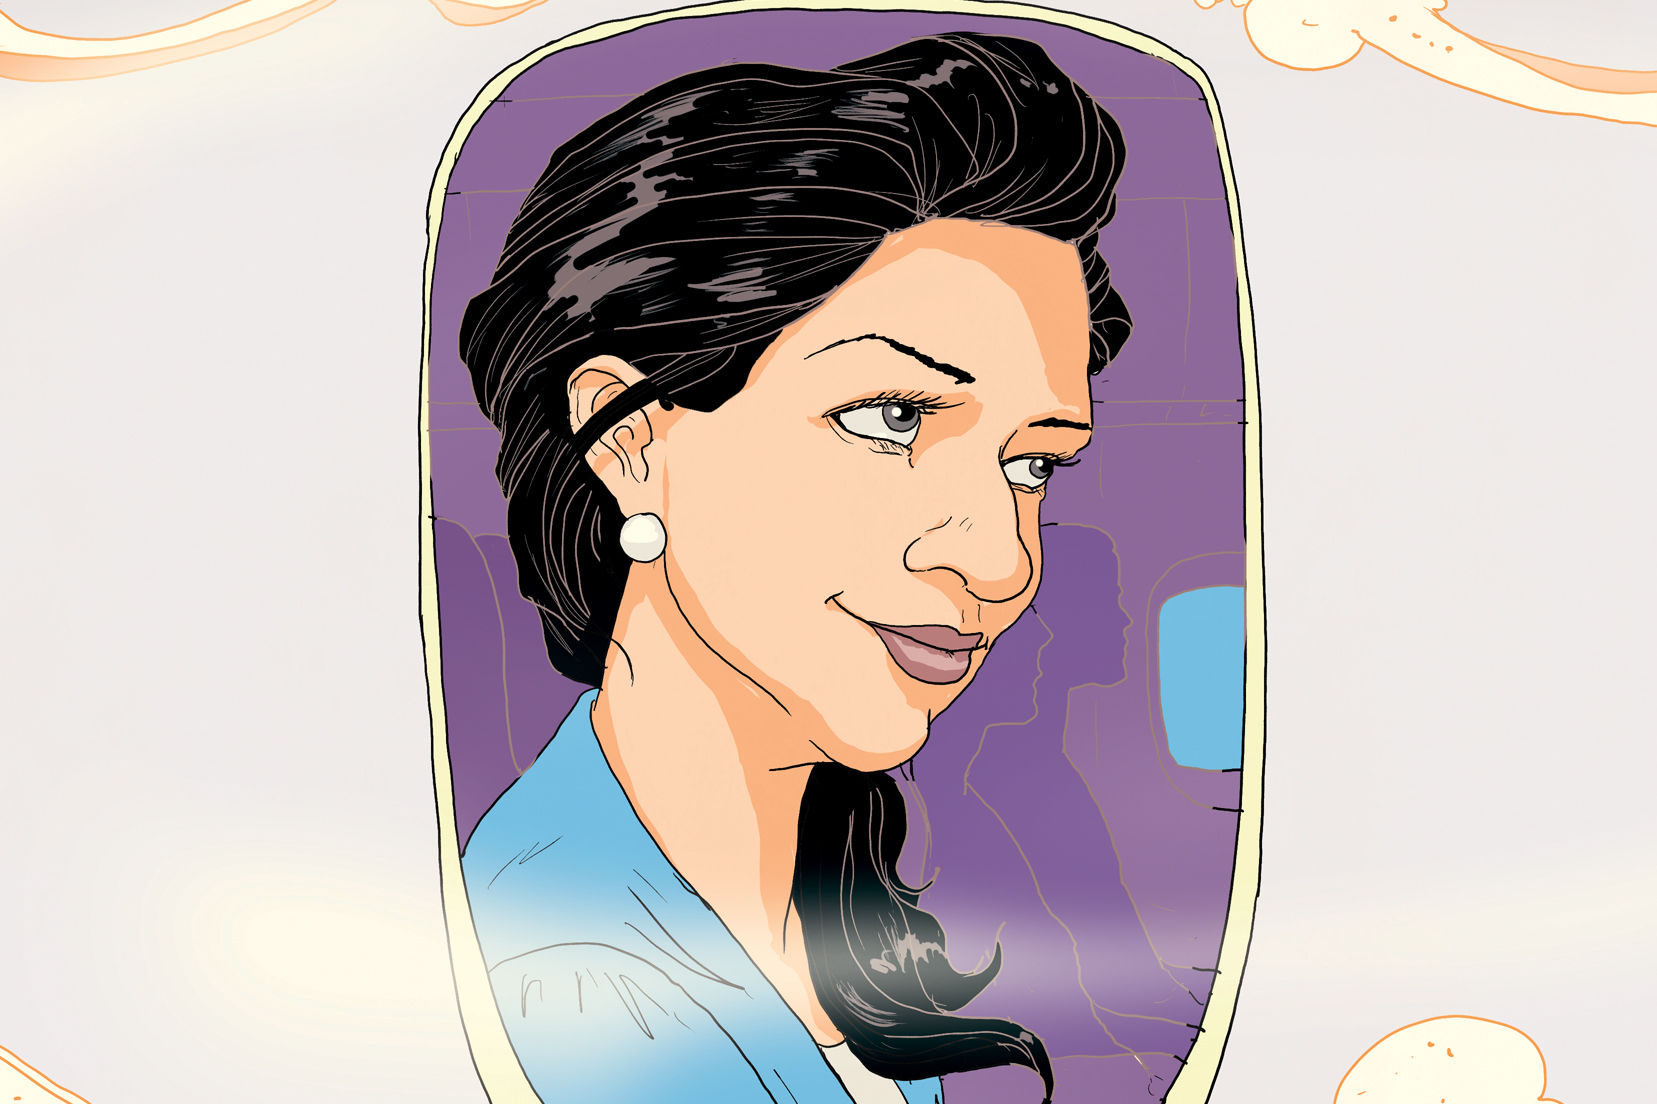 Jis 0217 travel featured illo woman on plane cs0nsz